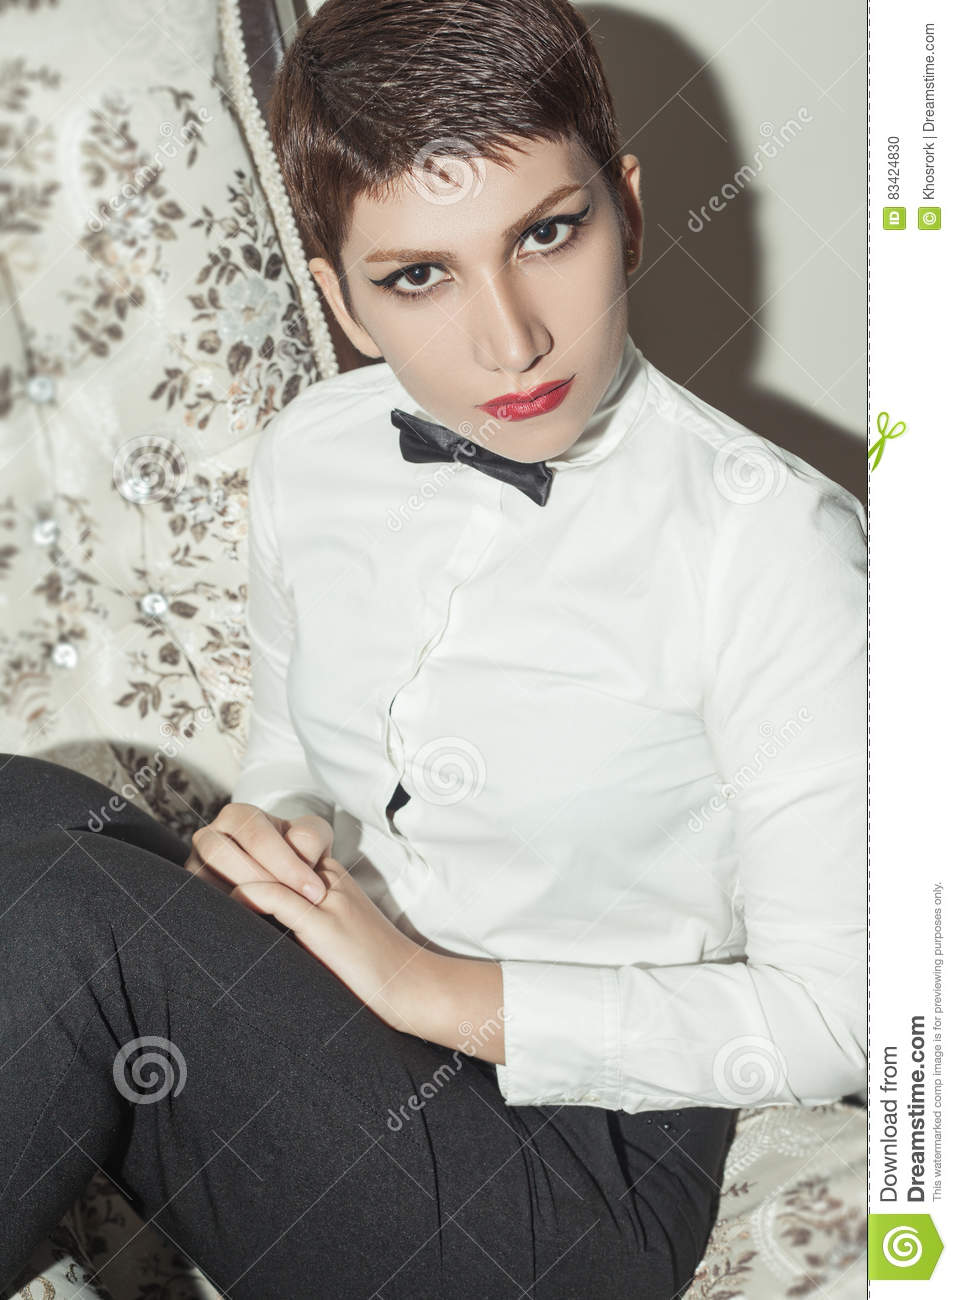 Young Beautiful Woman With Short Hair Style And Classic Wear With